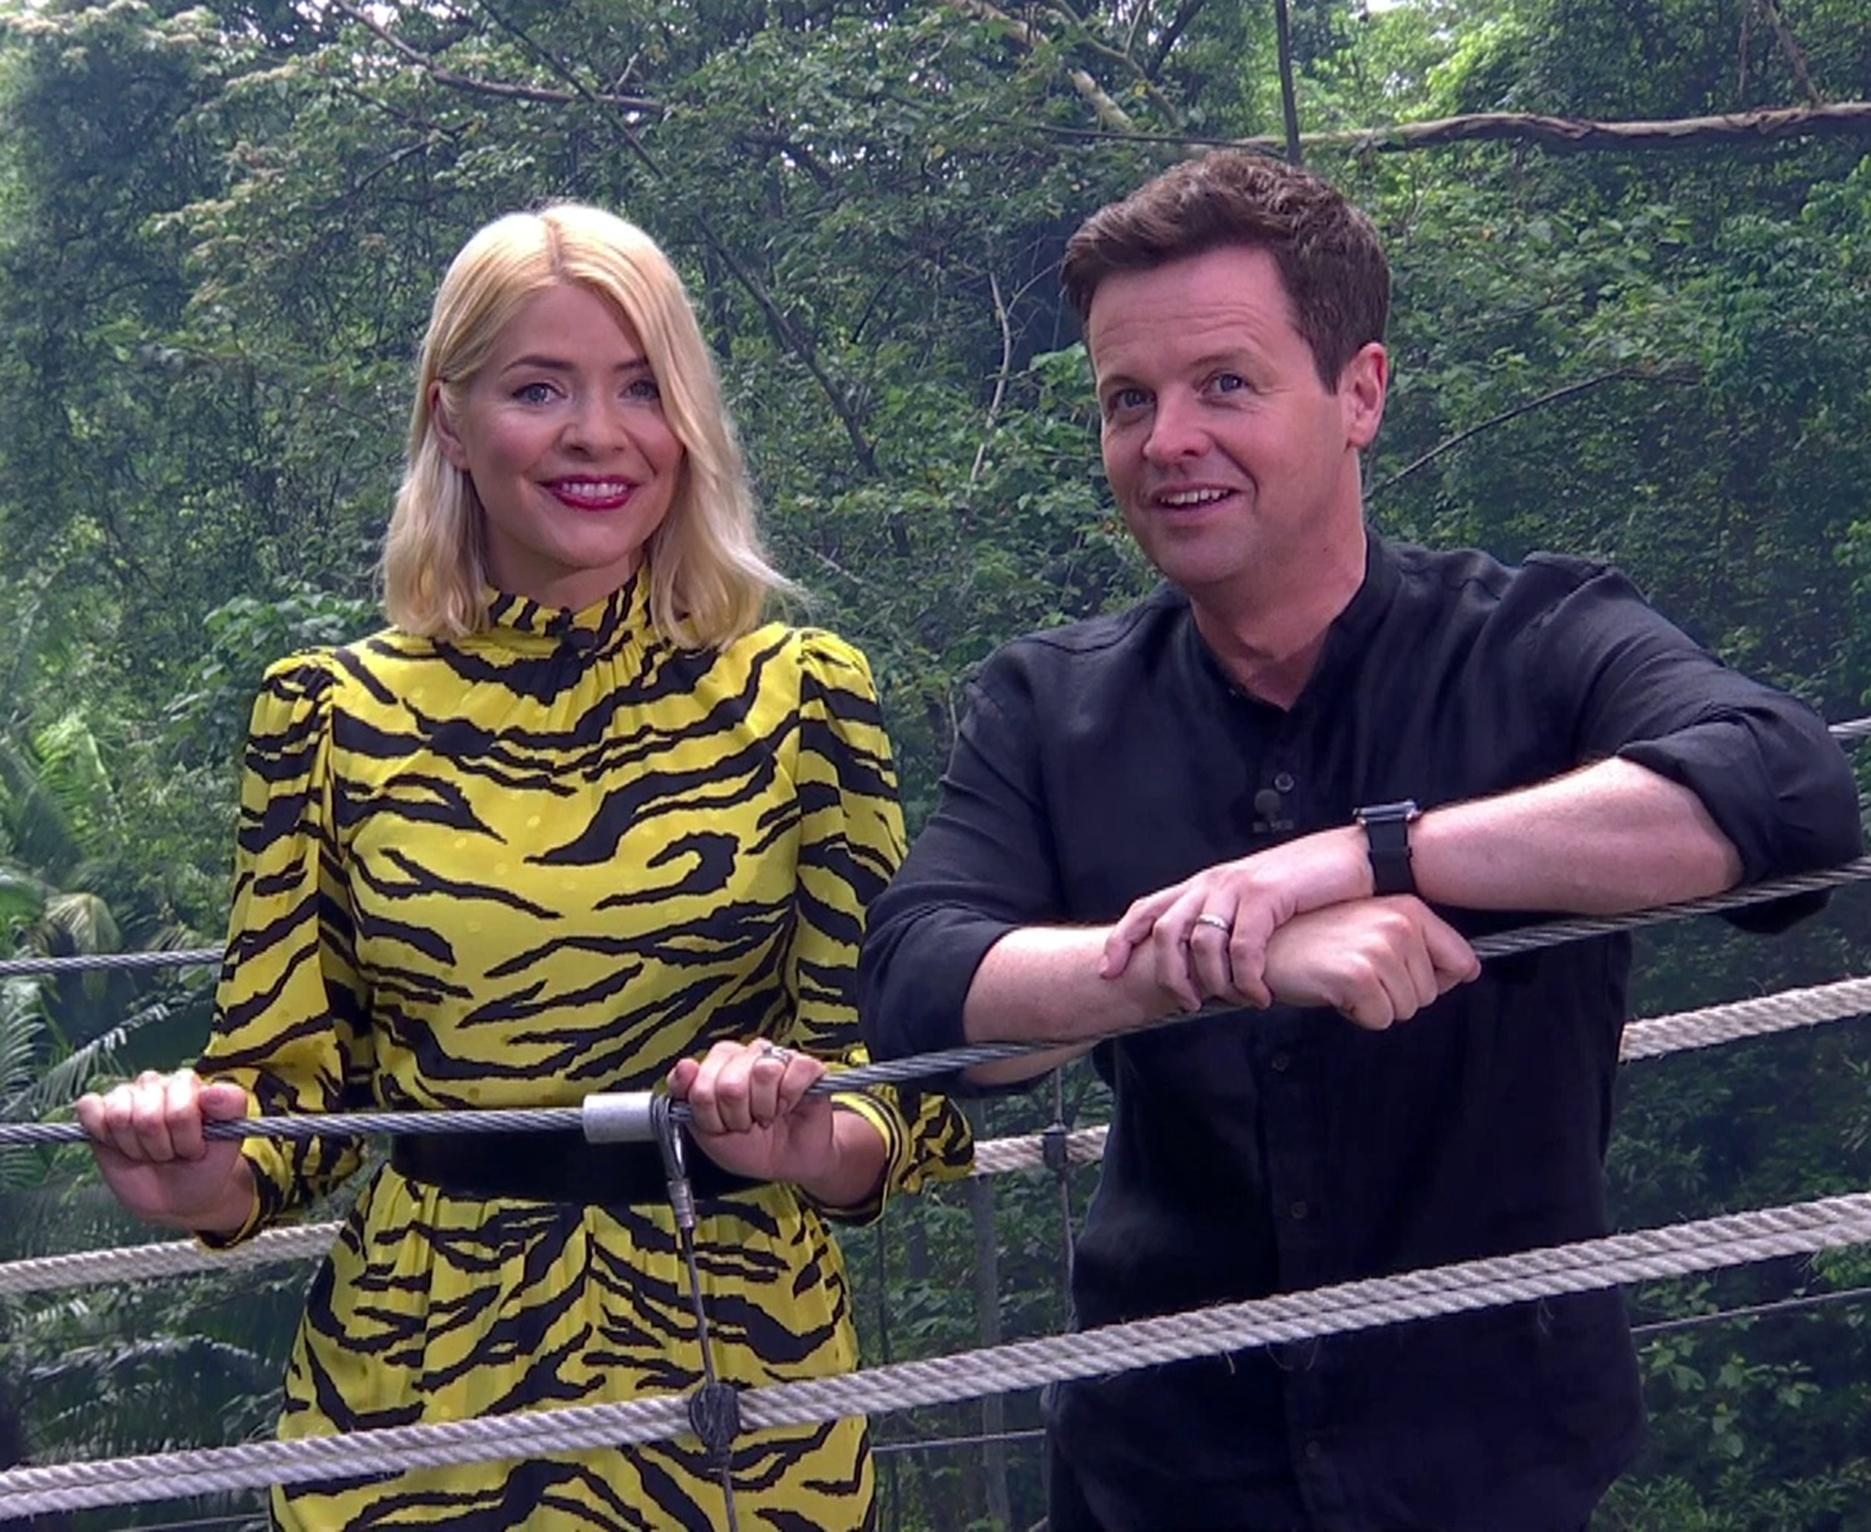 Holly Willoughby won't be returning to This Morning until 2019 after I'm A Celebrity stint